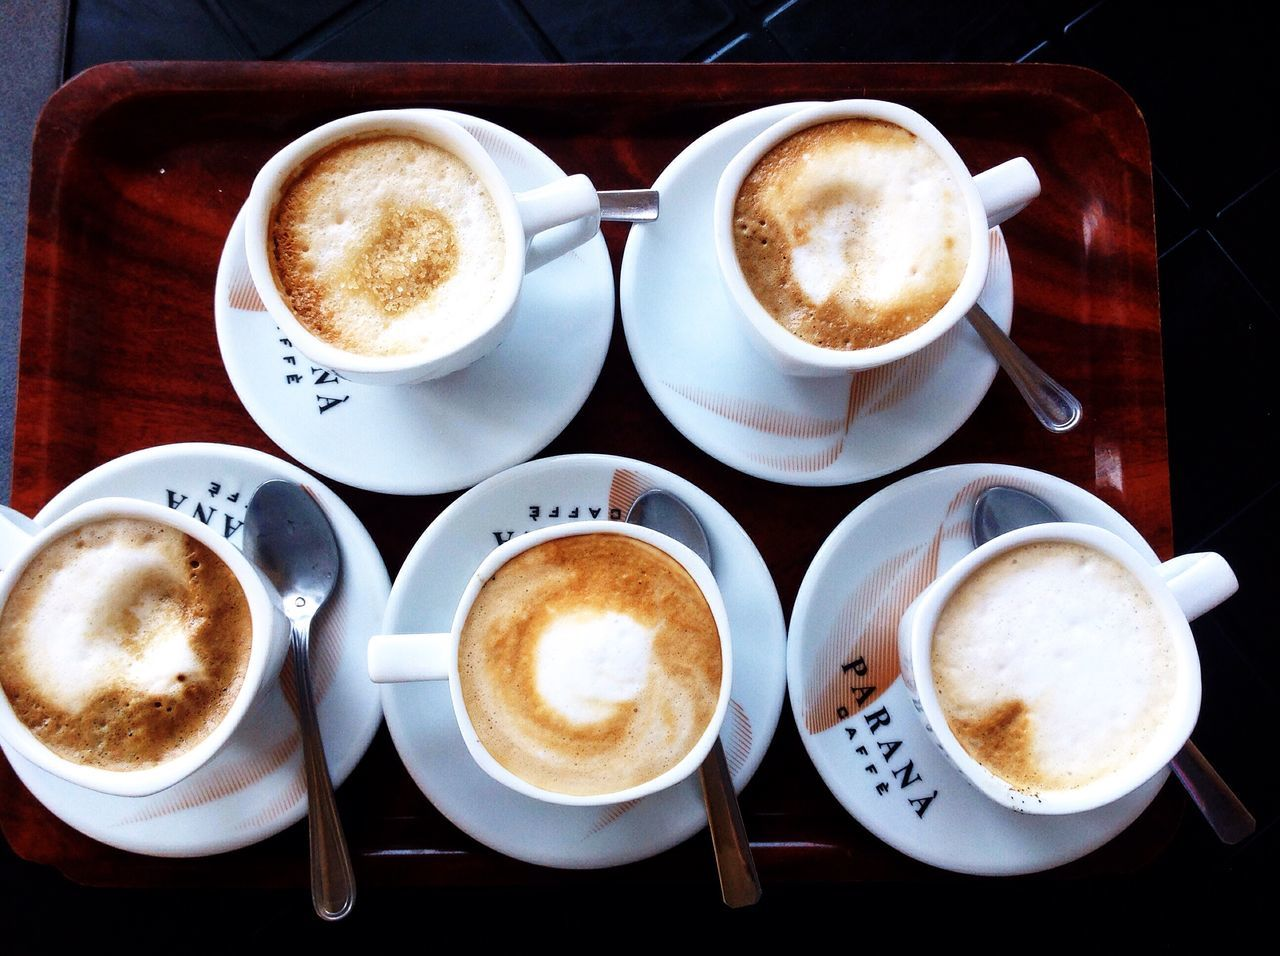 coffee - drink, coffee cup, drink, frothy drink, refreshment, cappuccino, table, food and drink, froth art, cup, saucer, latte, froth, high angle view, freshness, no people, directly above, indoors, close-up, breakfast, day